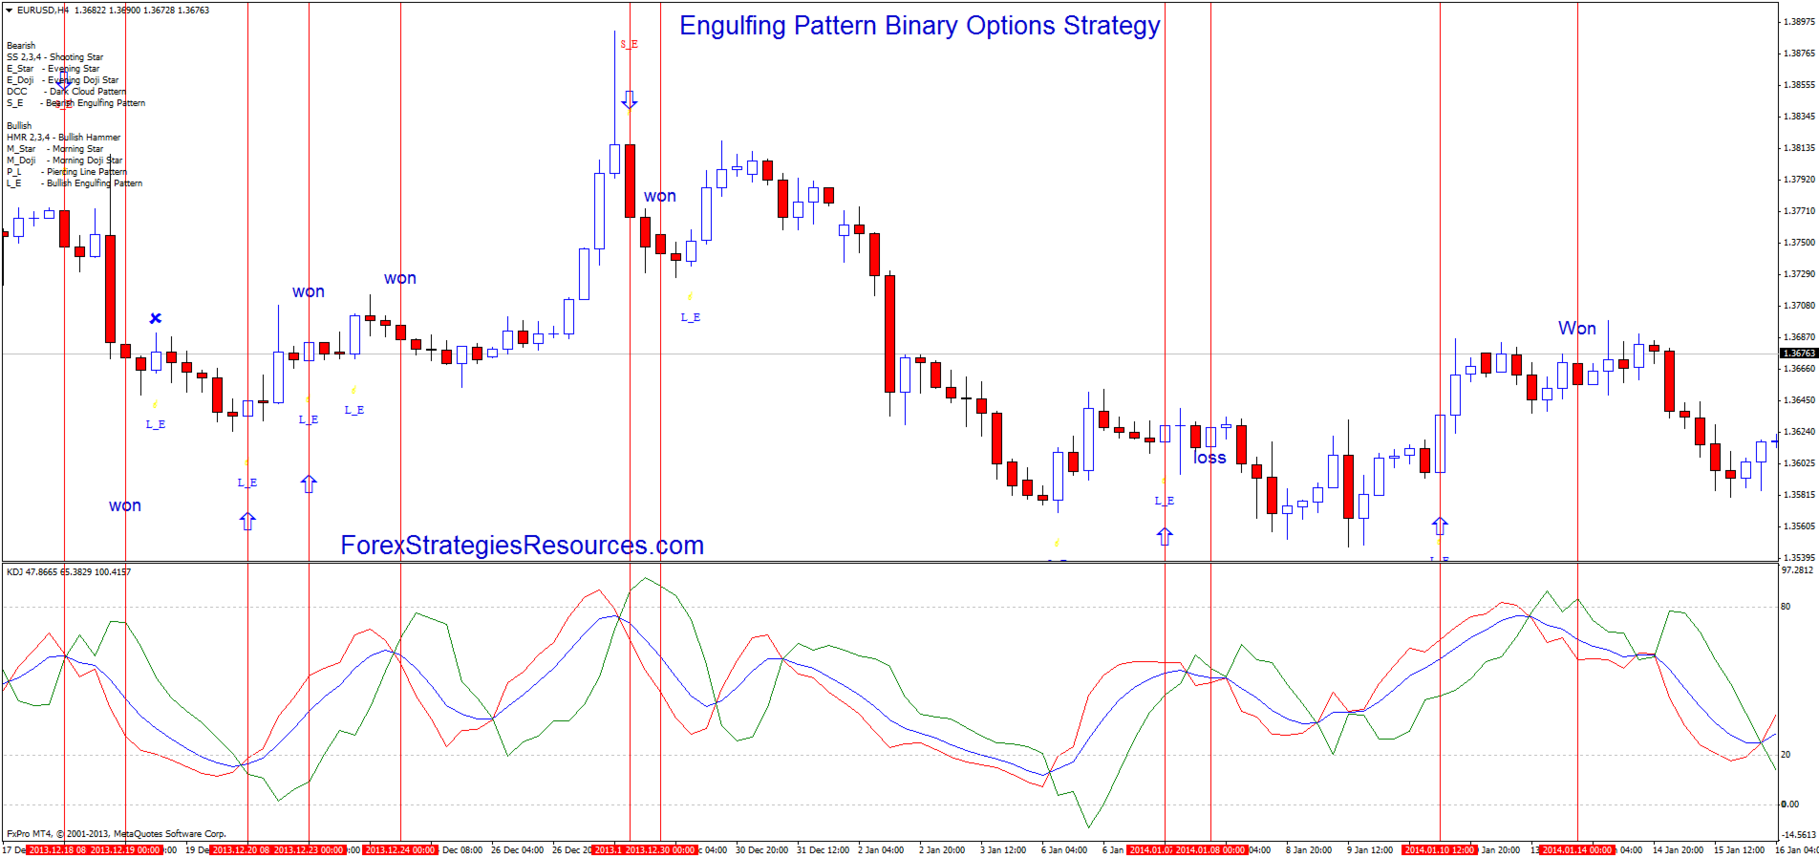 Binary options engulfing strategy